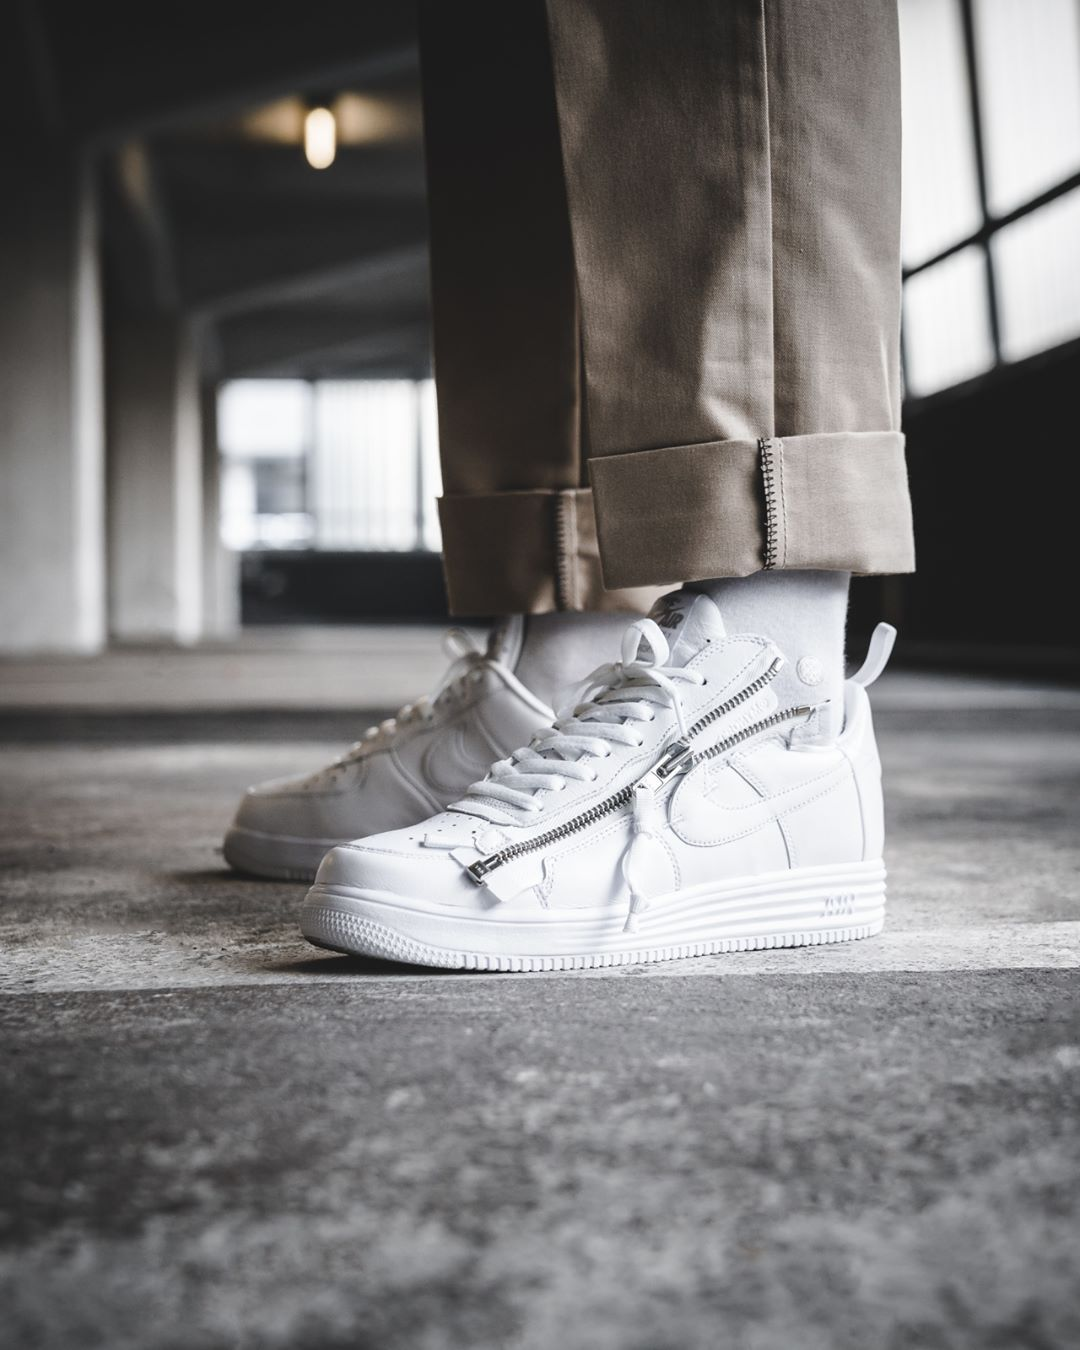 premium selection f15a1 b3791 ACRONYM x Nike Lunar Force 1